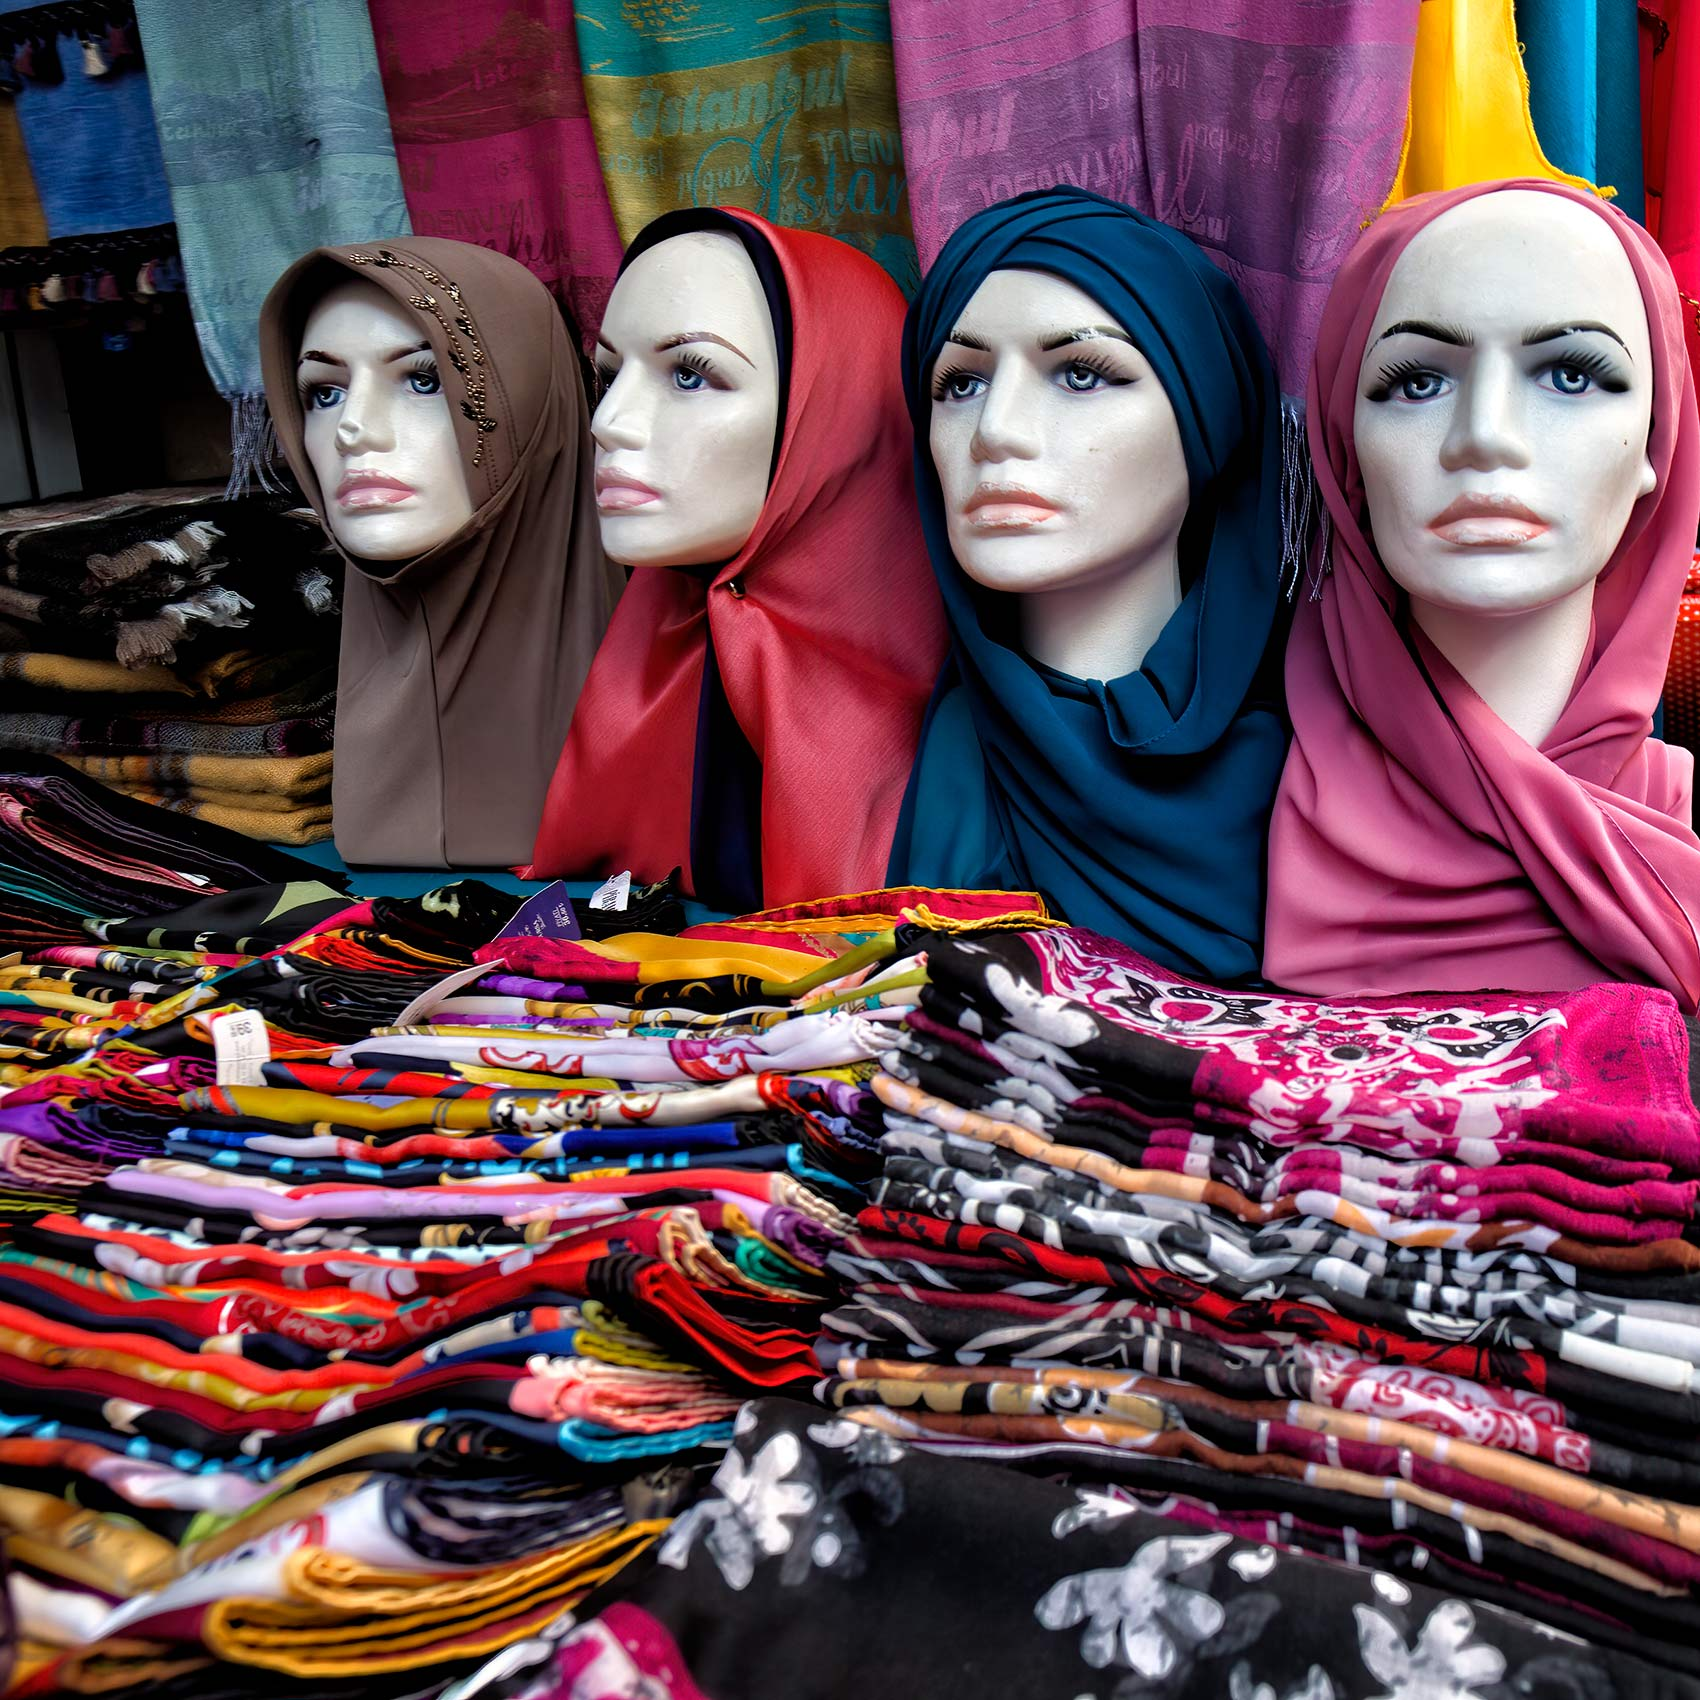 mannequins-wearing-hijabs-on-a-table-at-an-istanbul-street-market